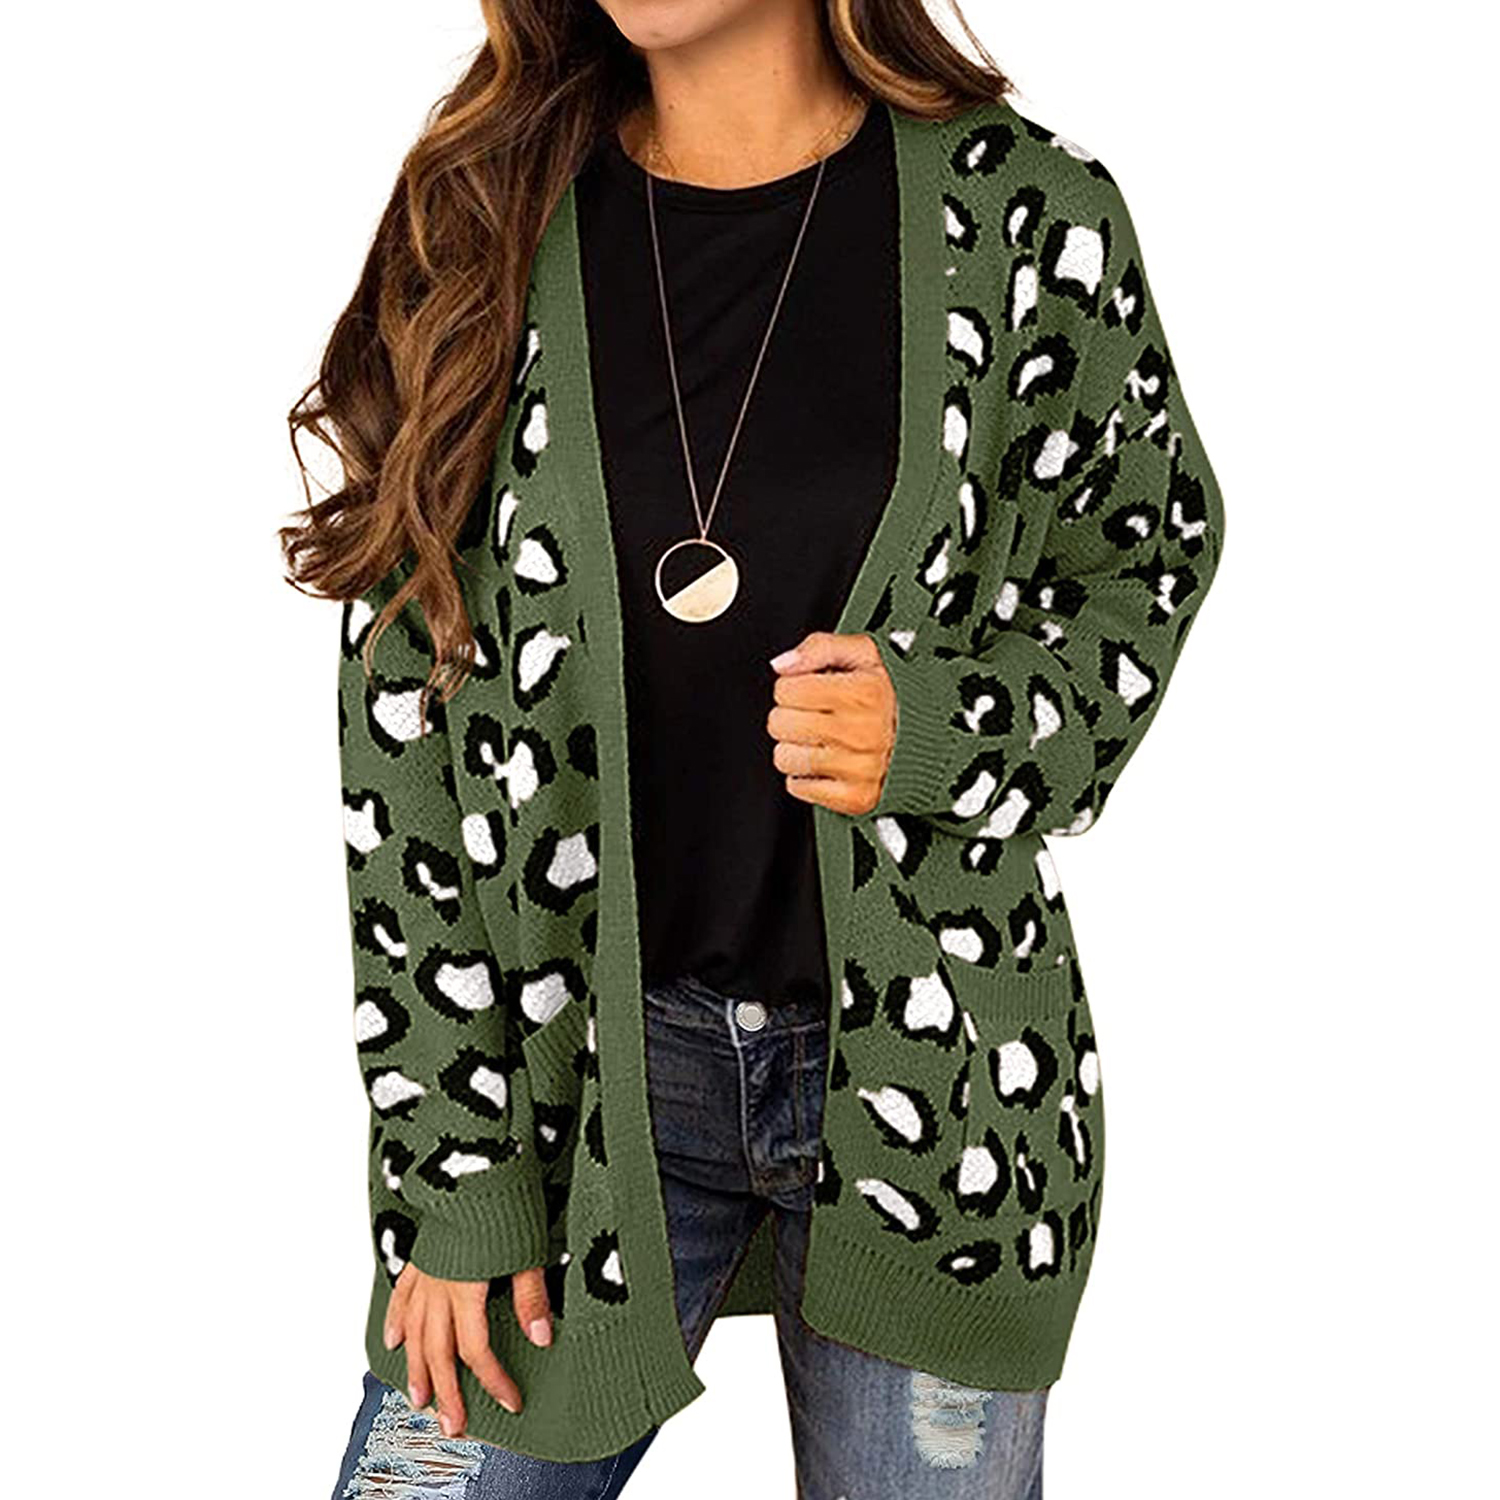 Grecerelle Women's Open Front Chunky Cardigan